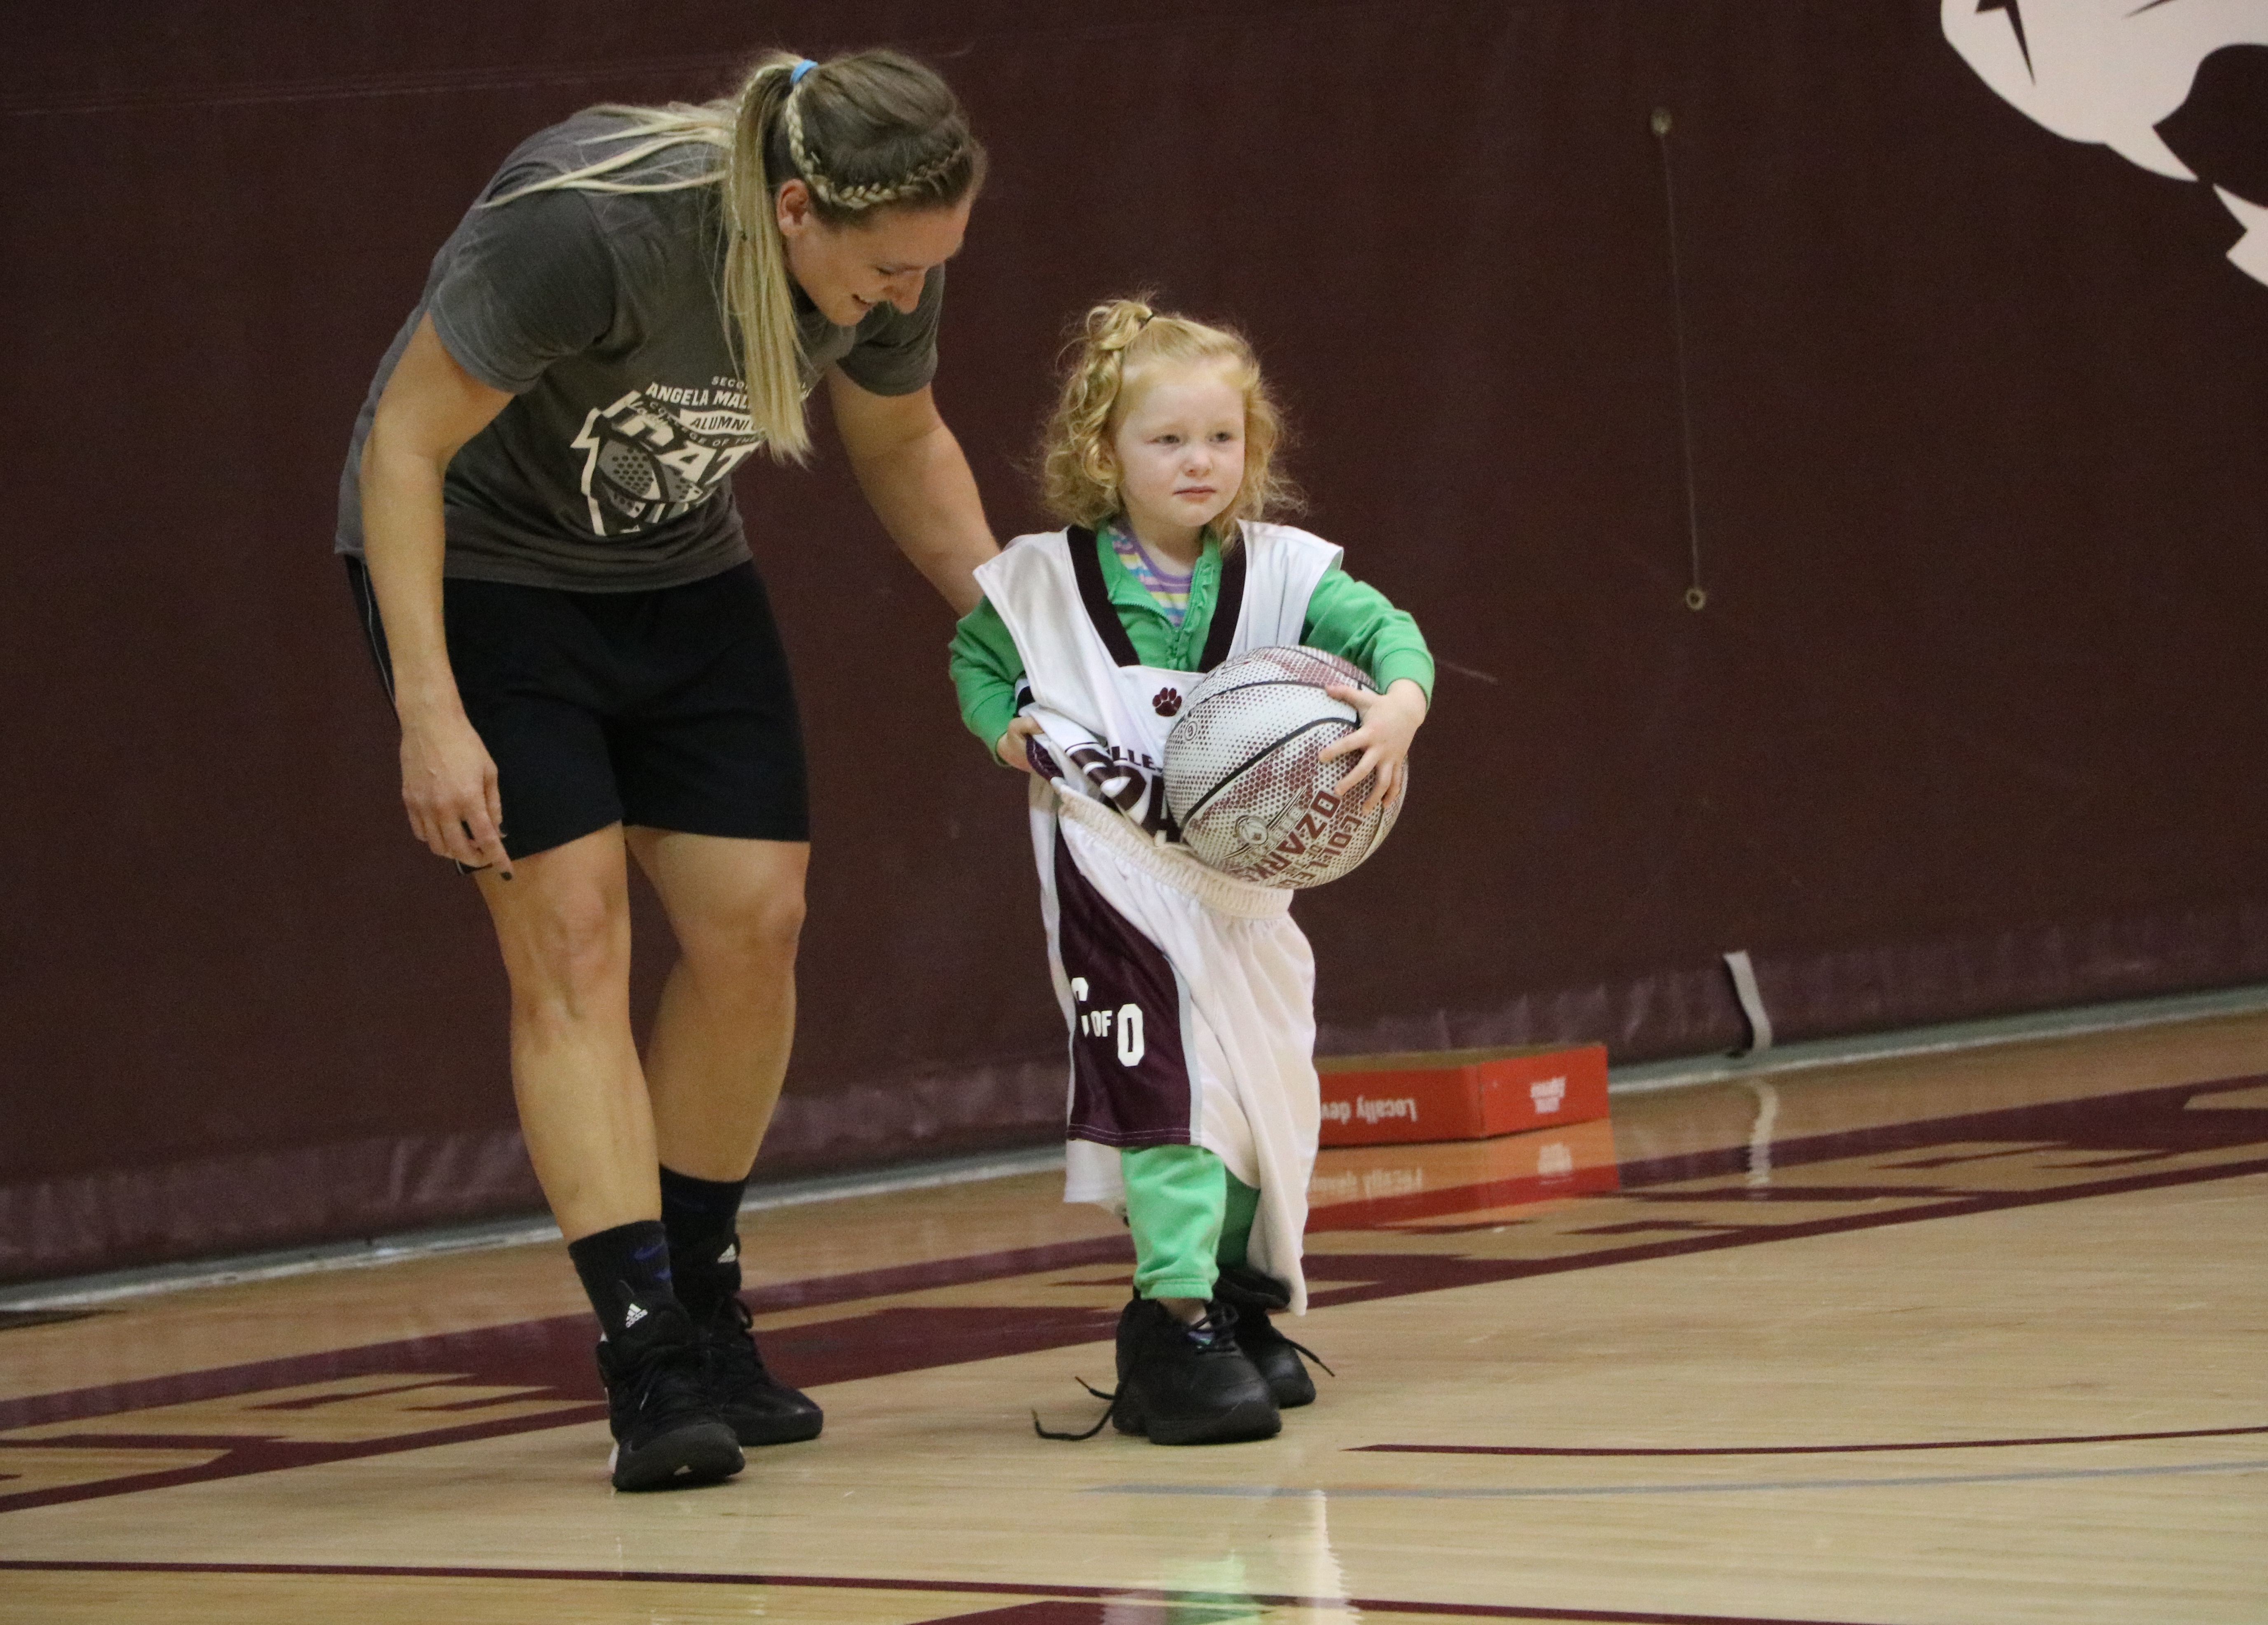 Alumni's little girl escorted bya Lady Bobcat player during a game of Dress Up Like A Bobcat